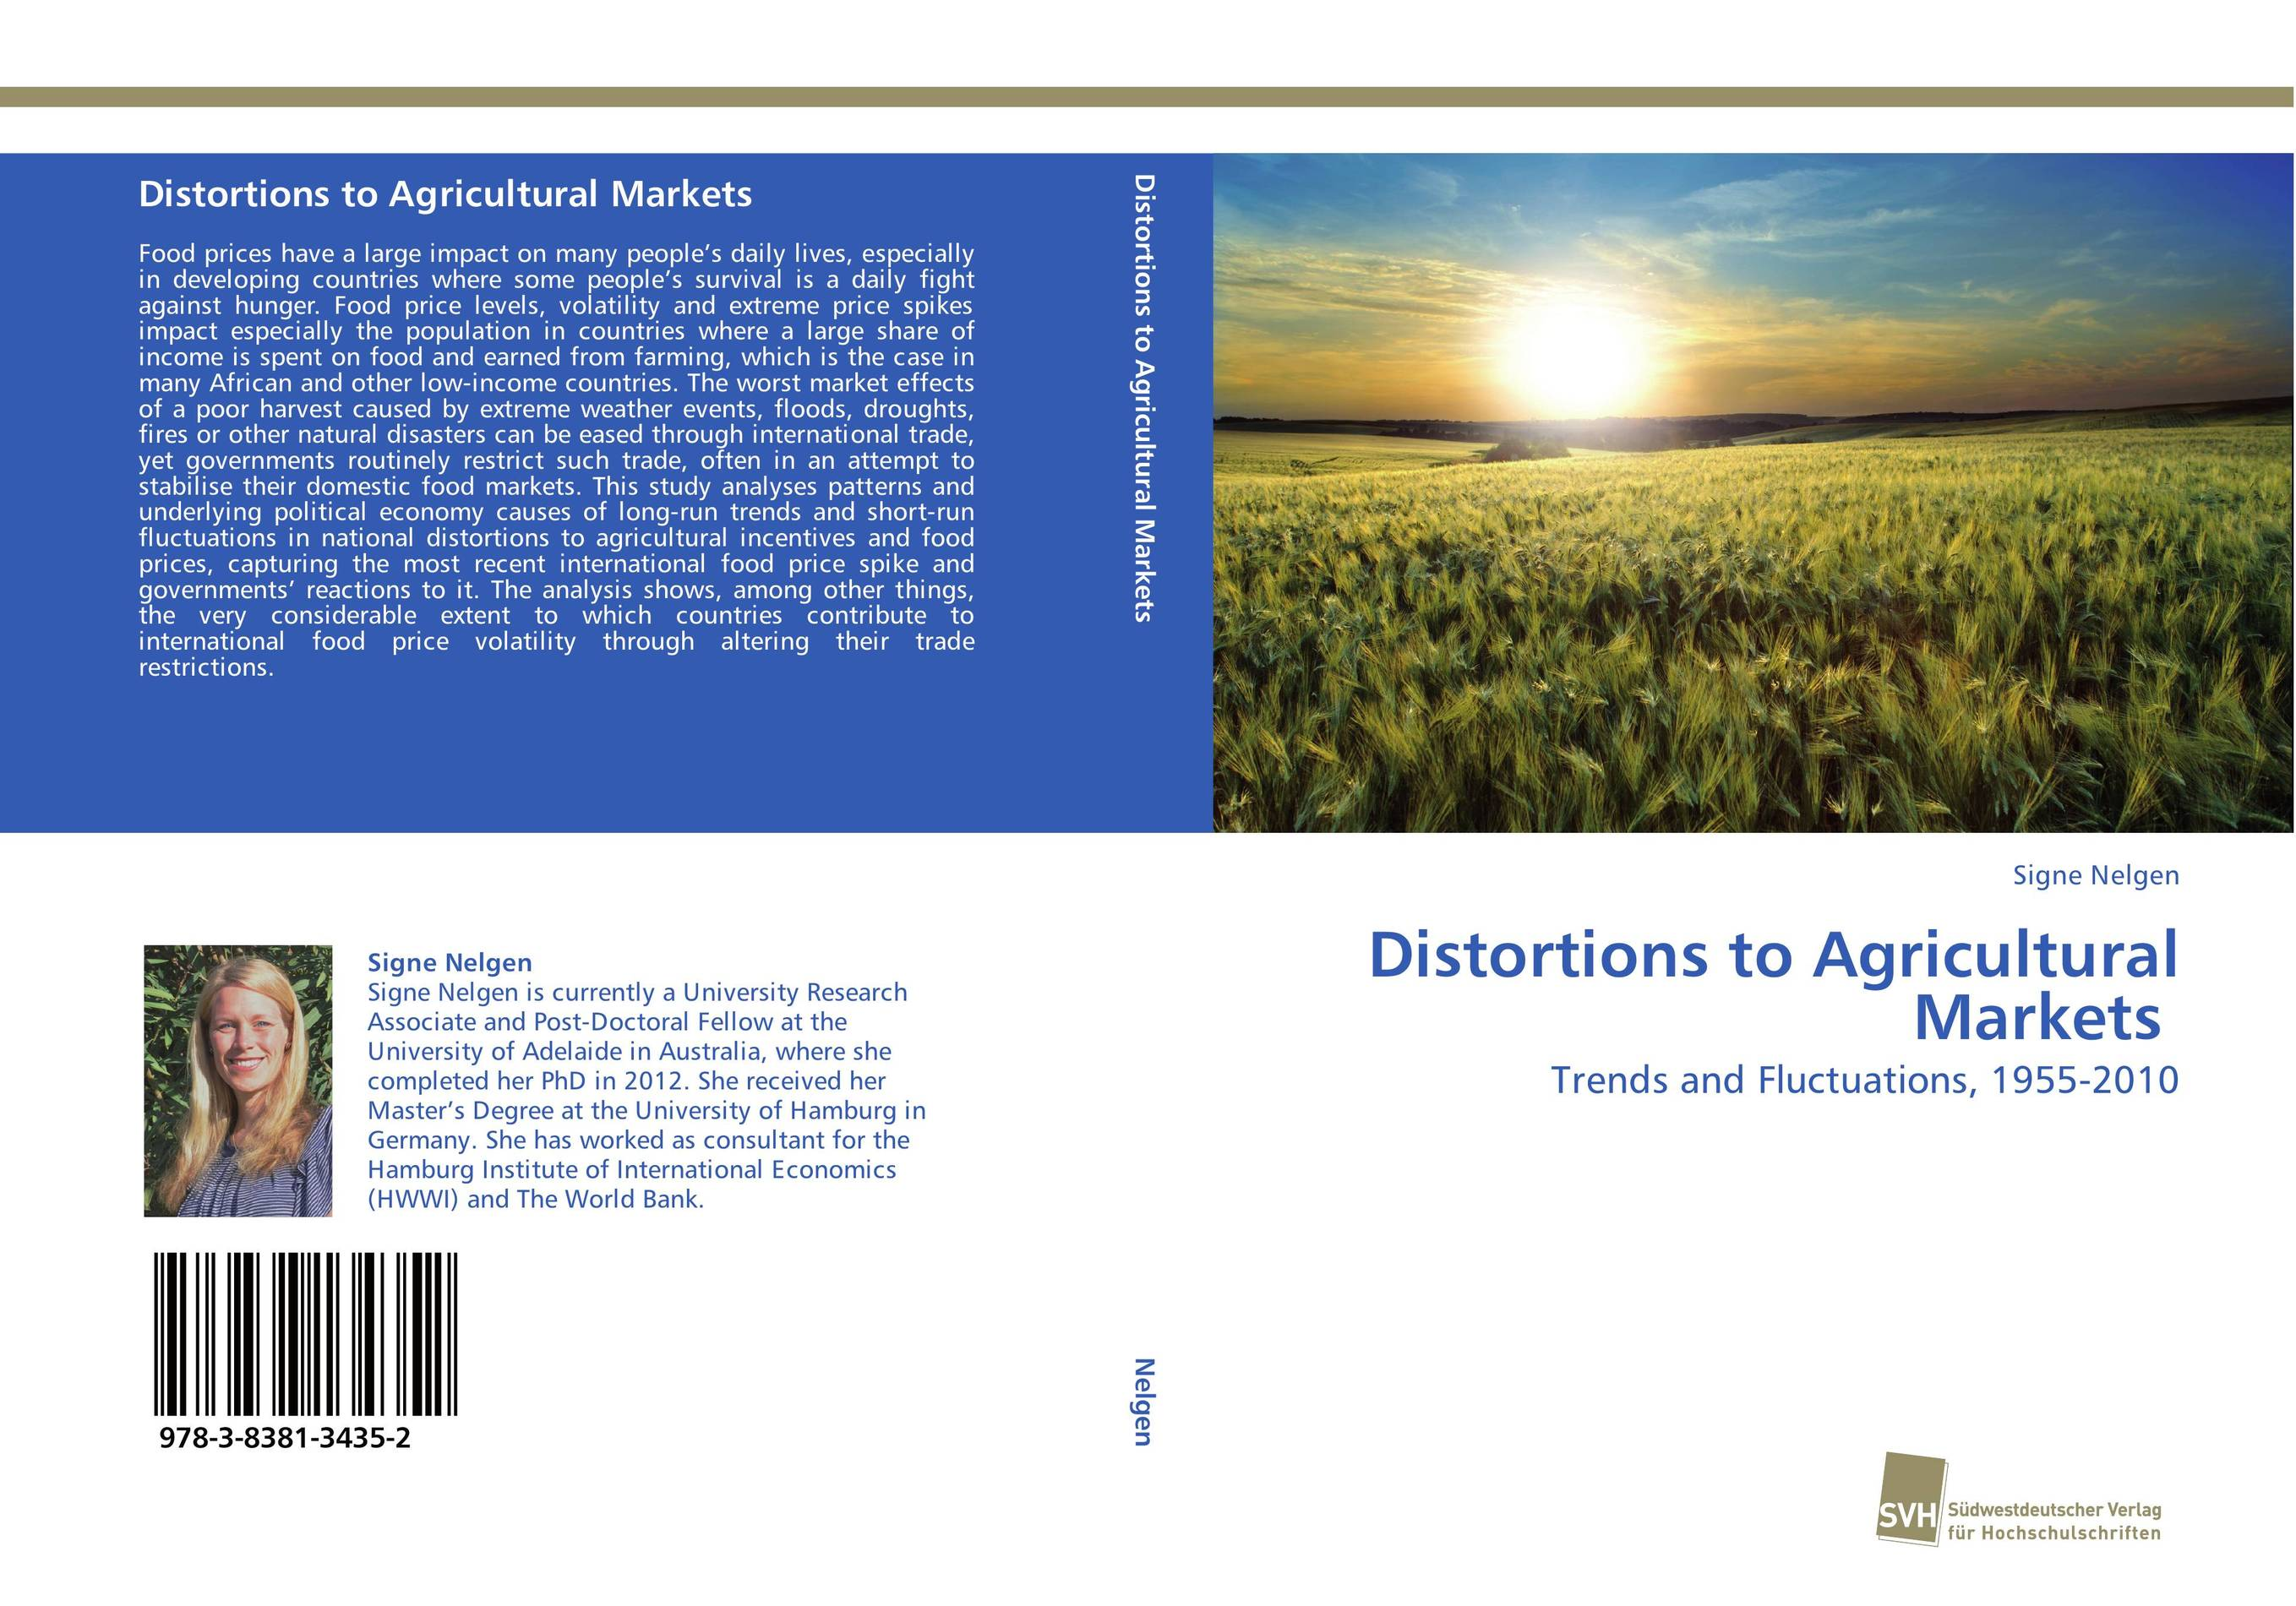 Distortions to Agricultural Markets what she left